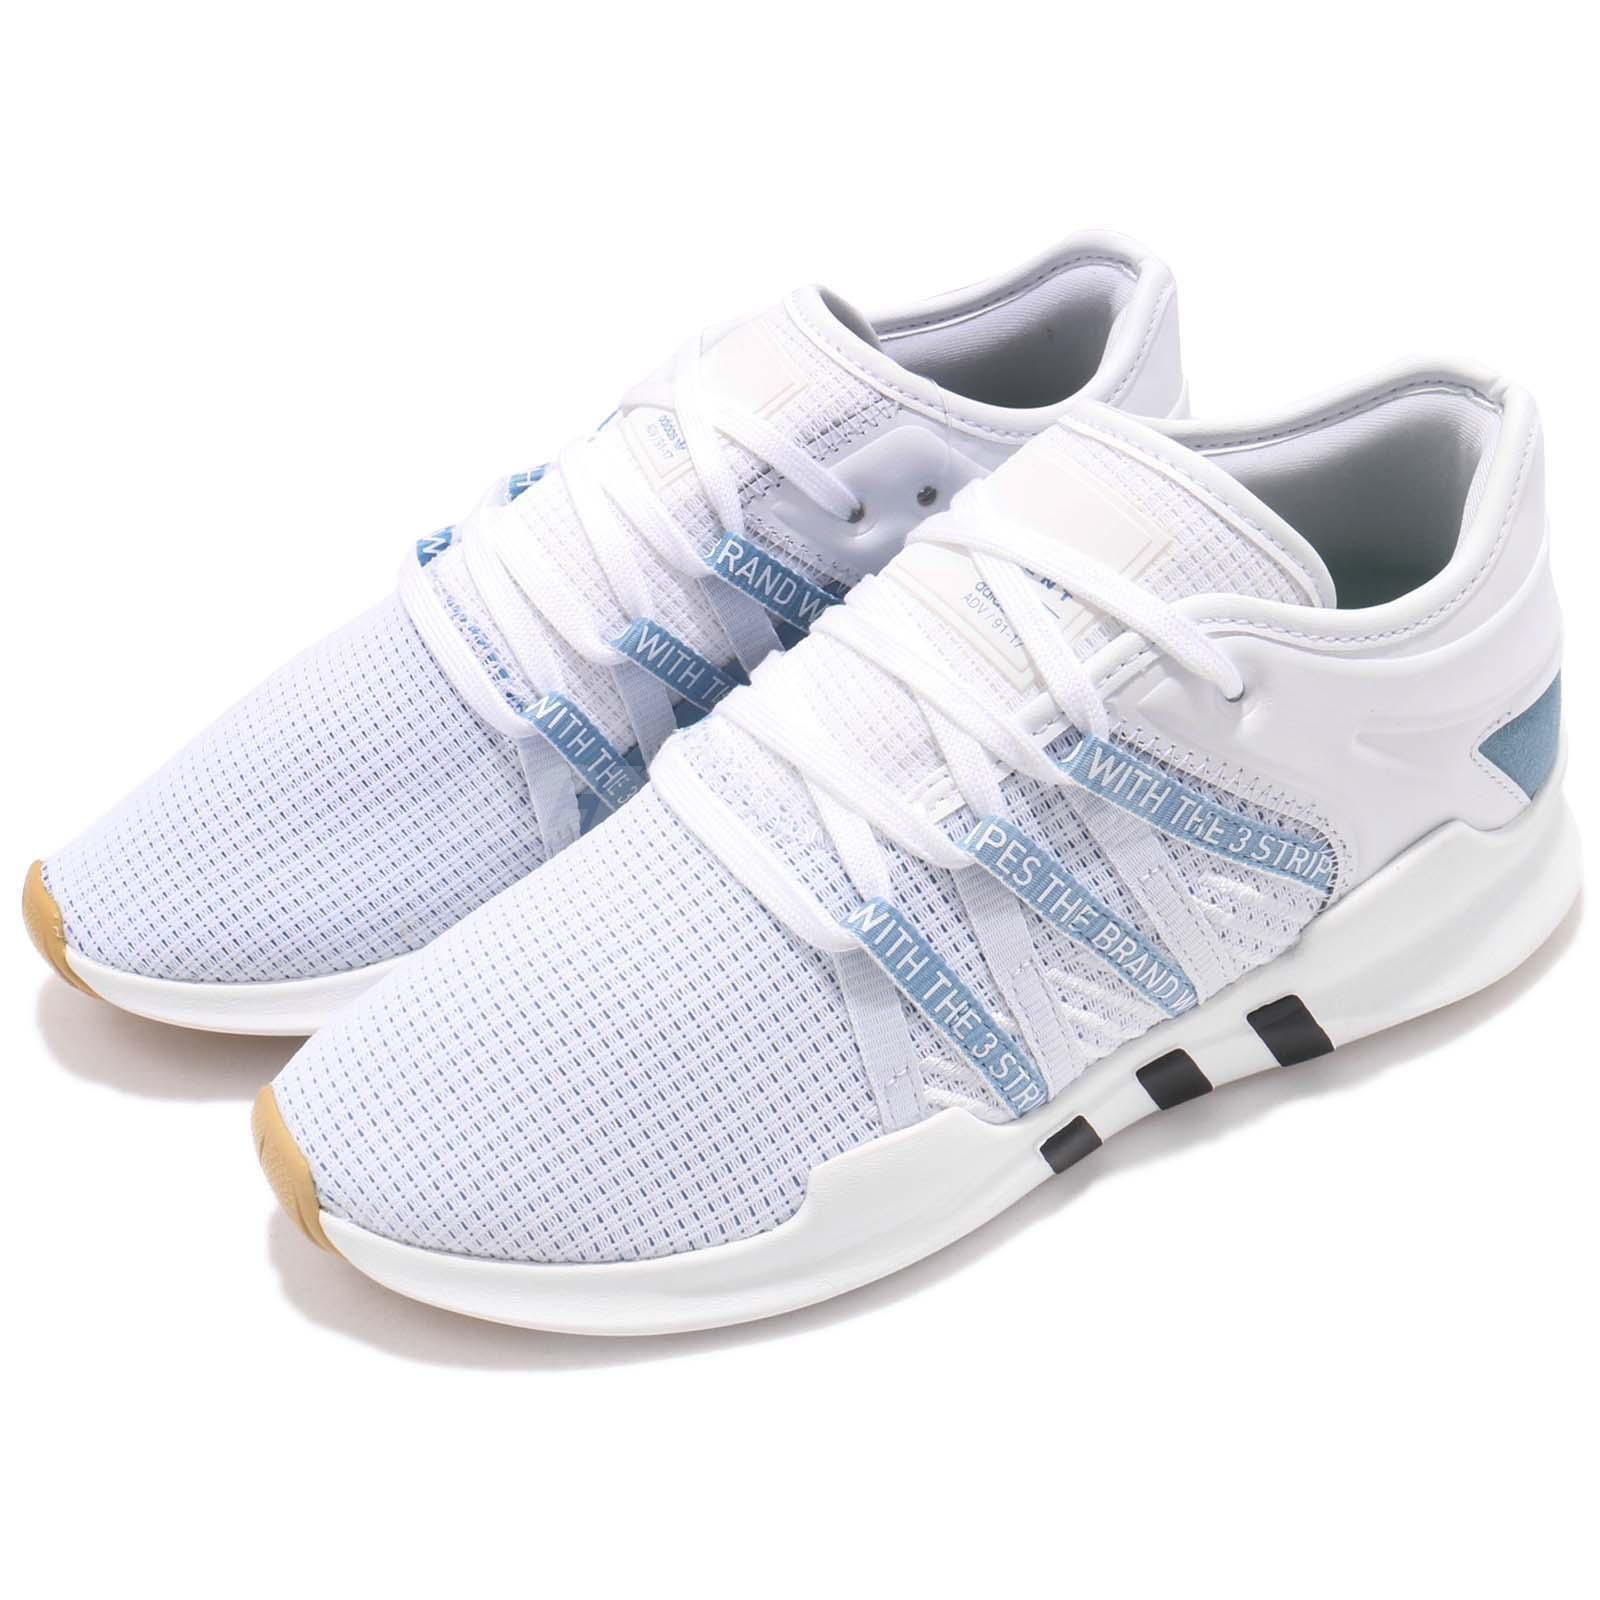 meet dca85 f4757 Details about adidas Originals EQT Racing ADV W White Ash Blue Women  Running Shoes CQ2155